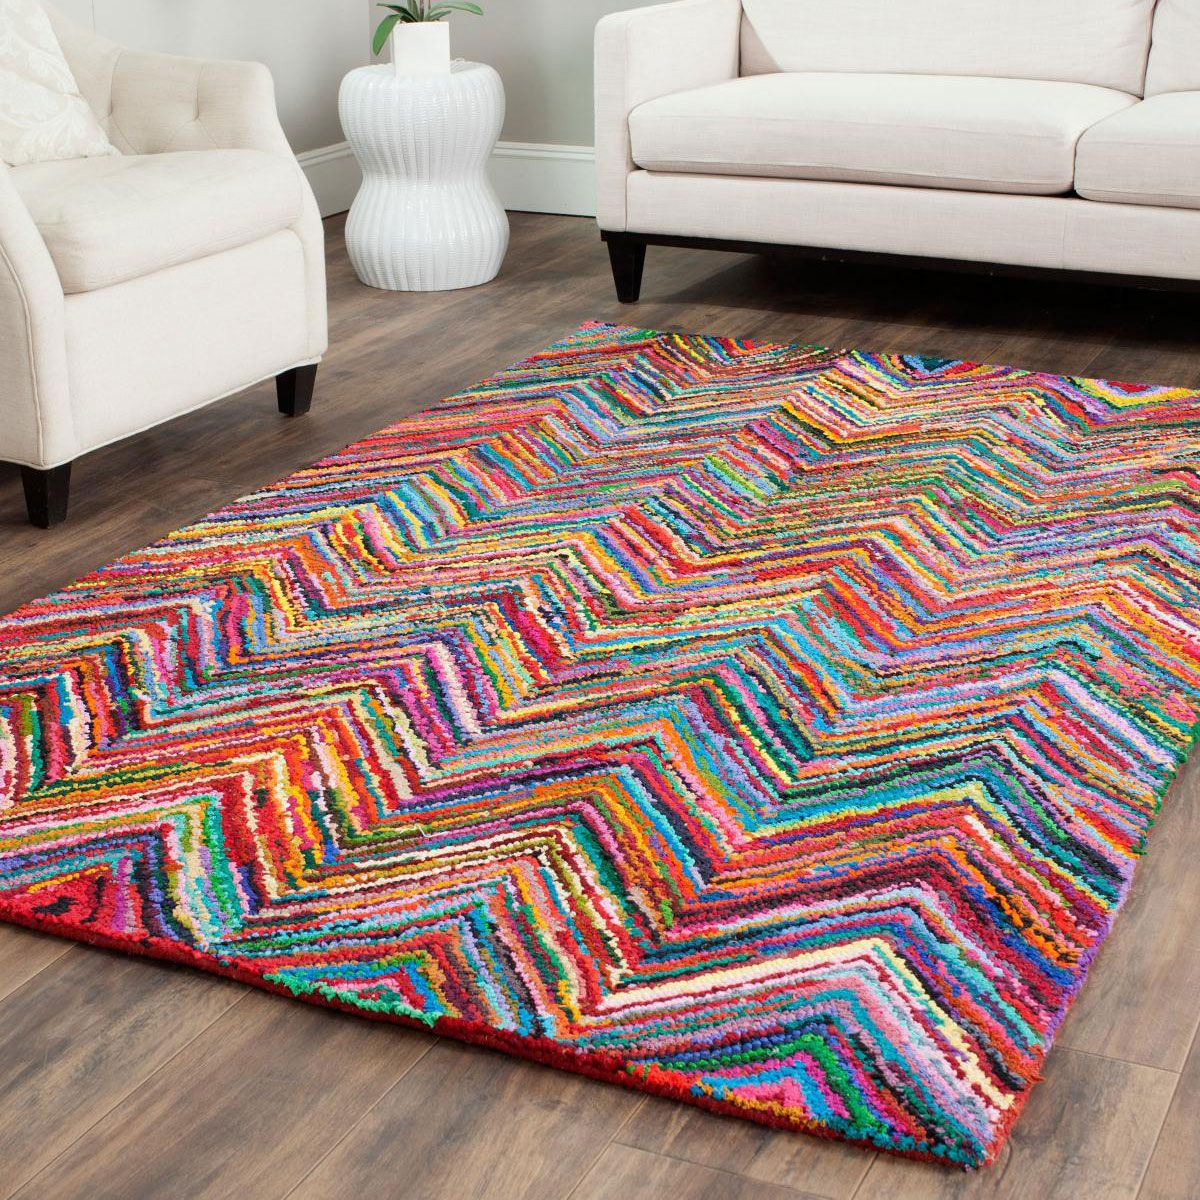 hallway kitchen cool runner carpet made colorful rugs runners in itm usa rug area